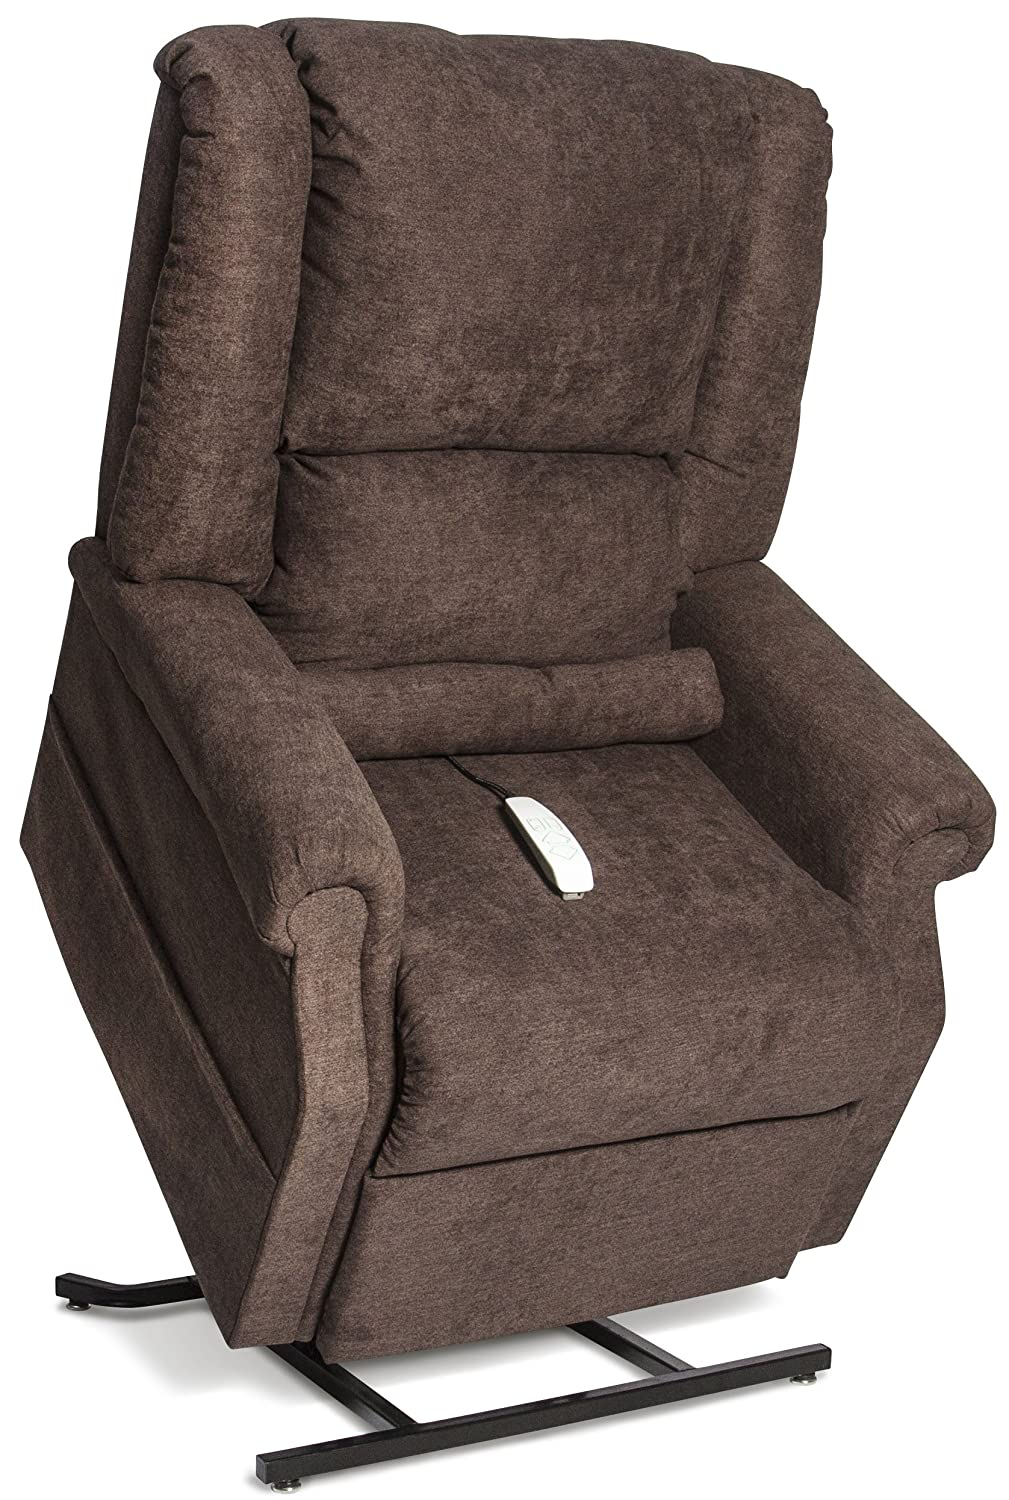 chairs active recliner chair cocoon lift shop healthcare recliners electric